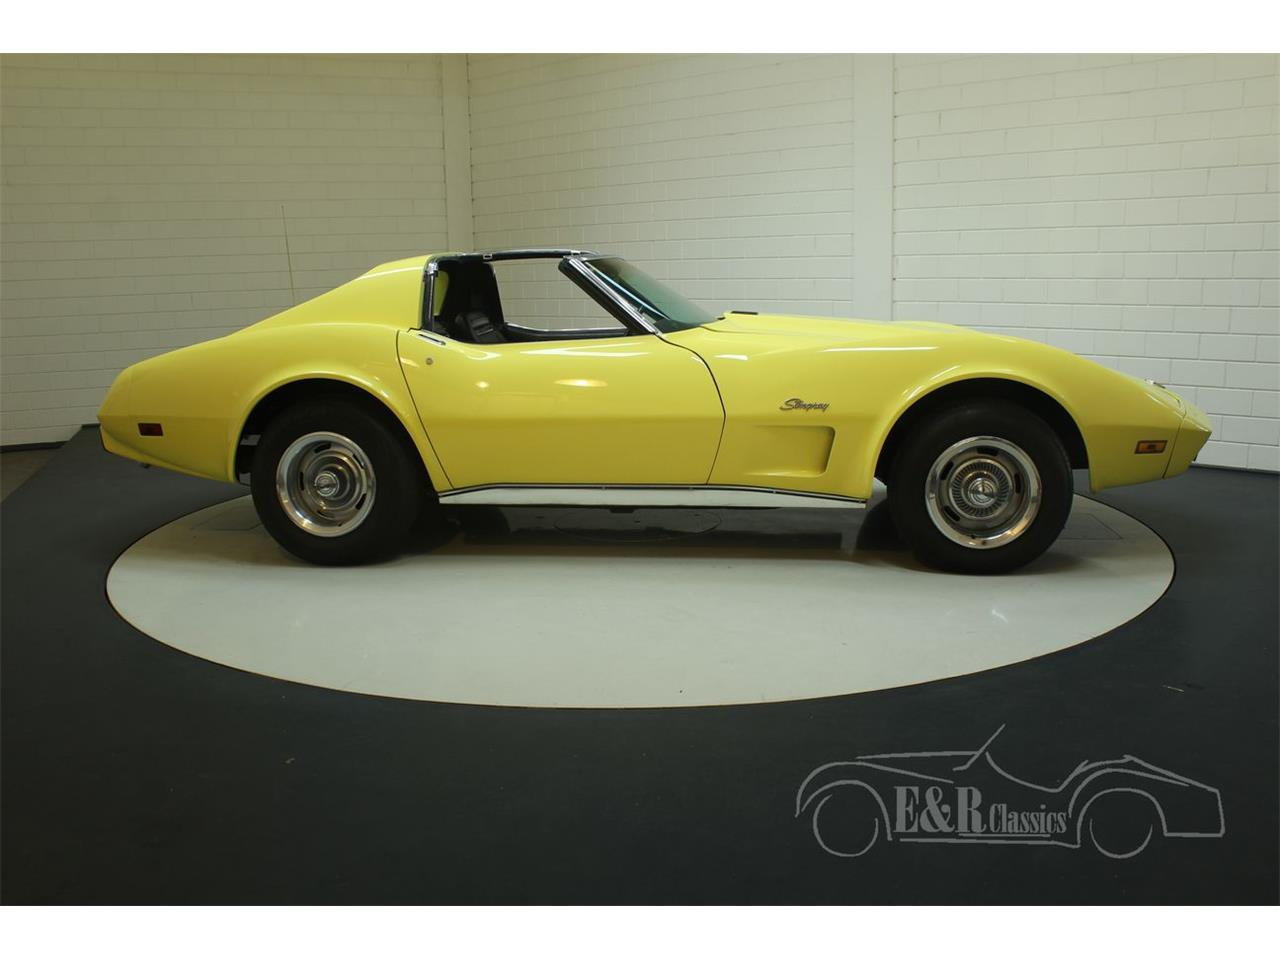 Large Picture of '74 Corvette - $34,292.00 Offered by E & R Classics - PFBT